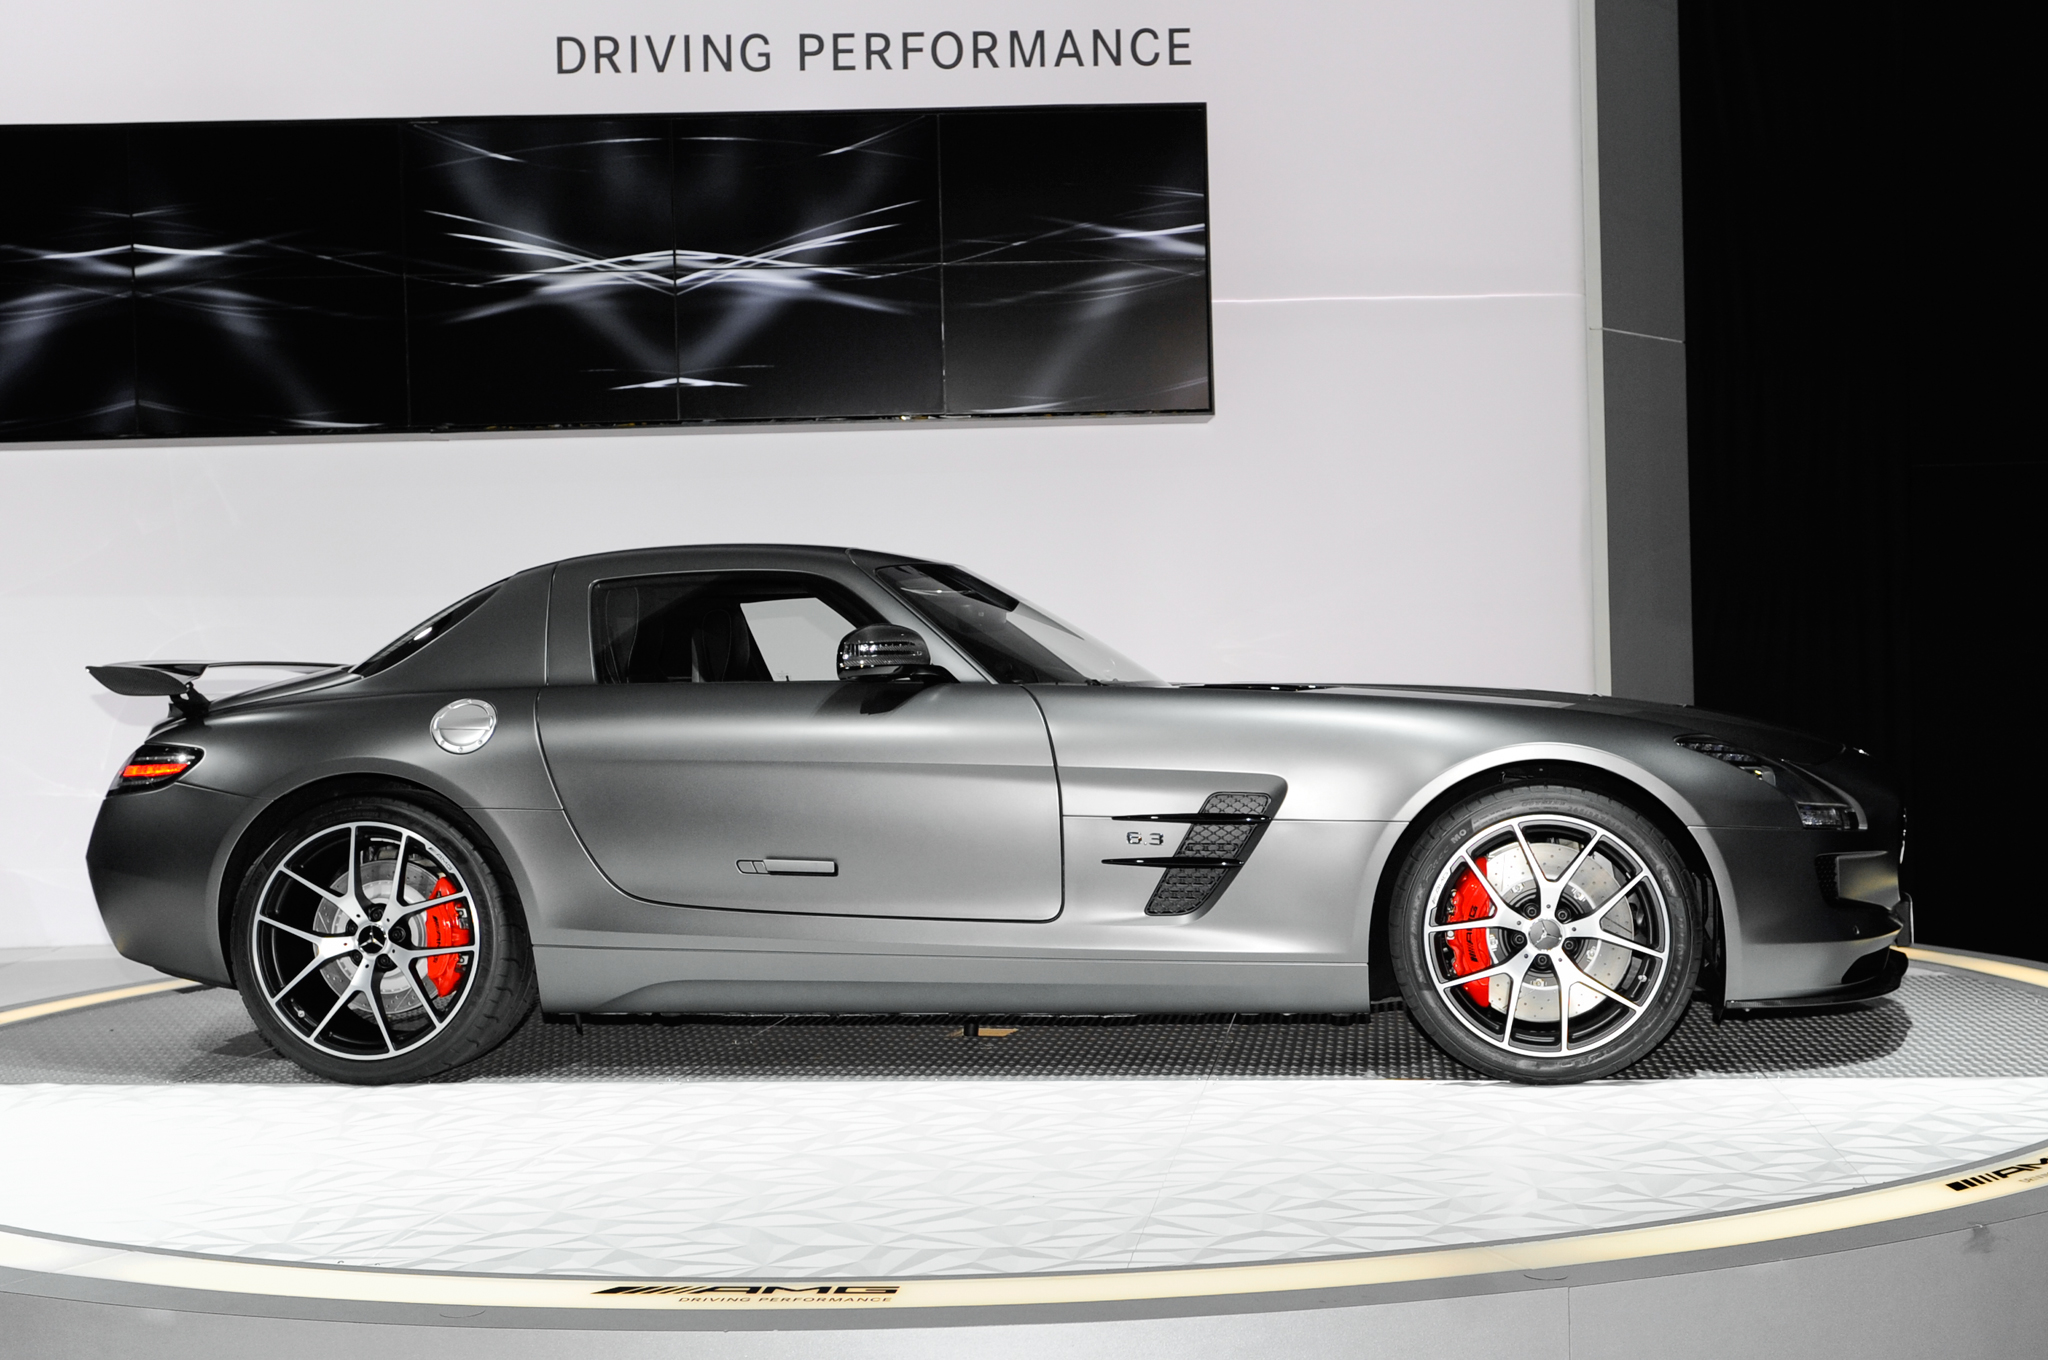 2015 Mercedes-Benz Sls Amg Gt Final Edition #19